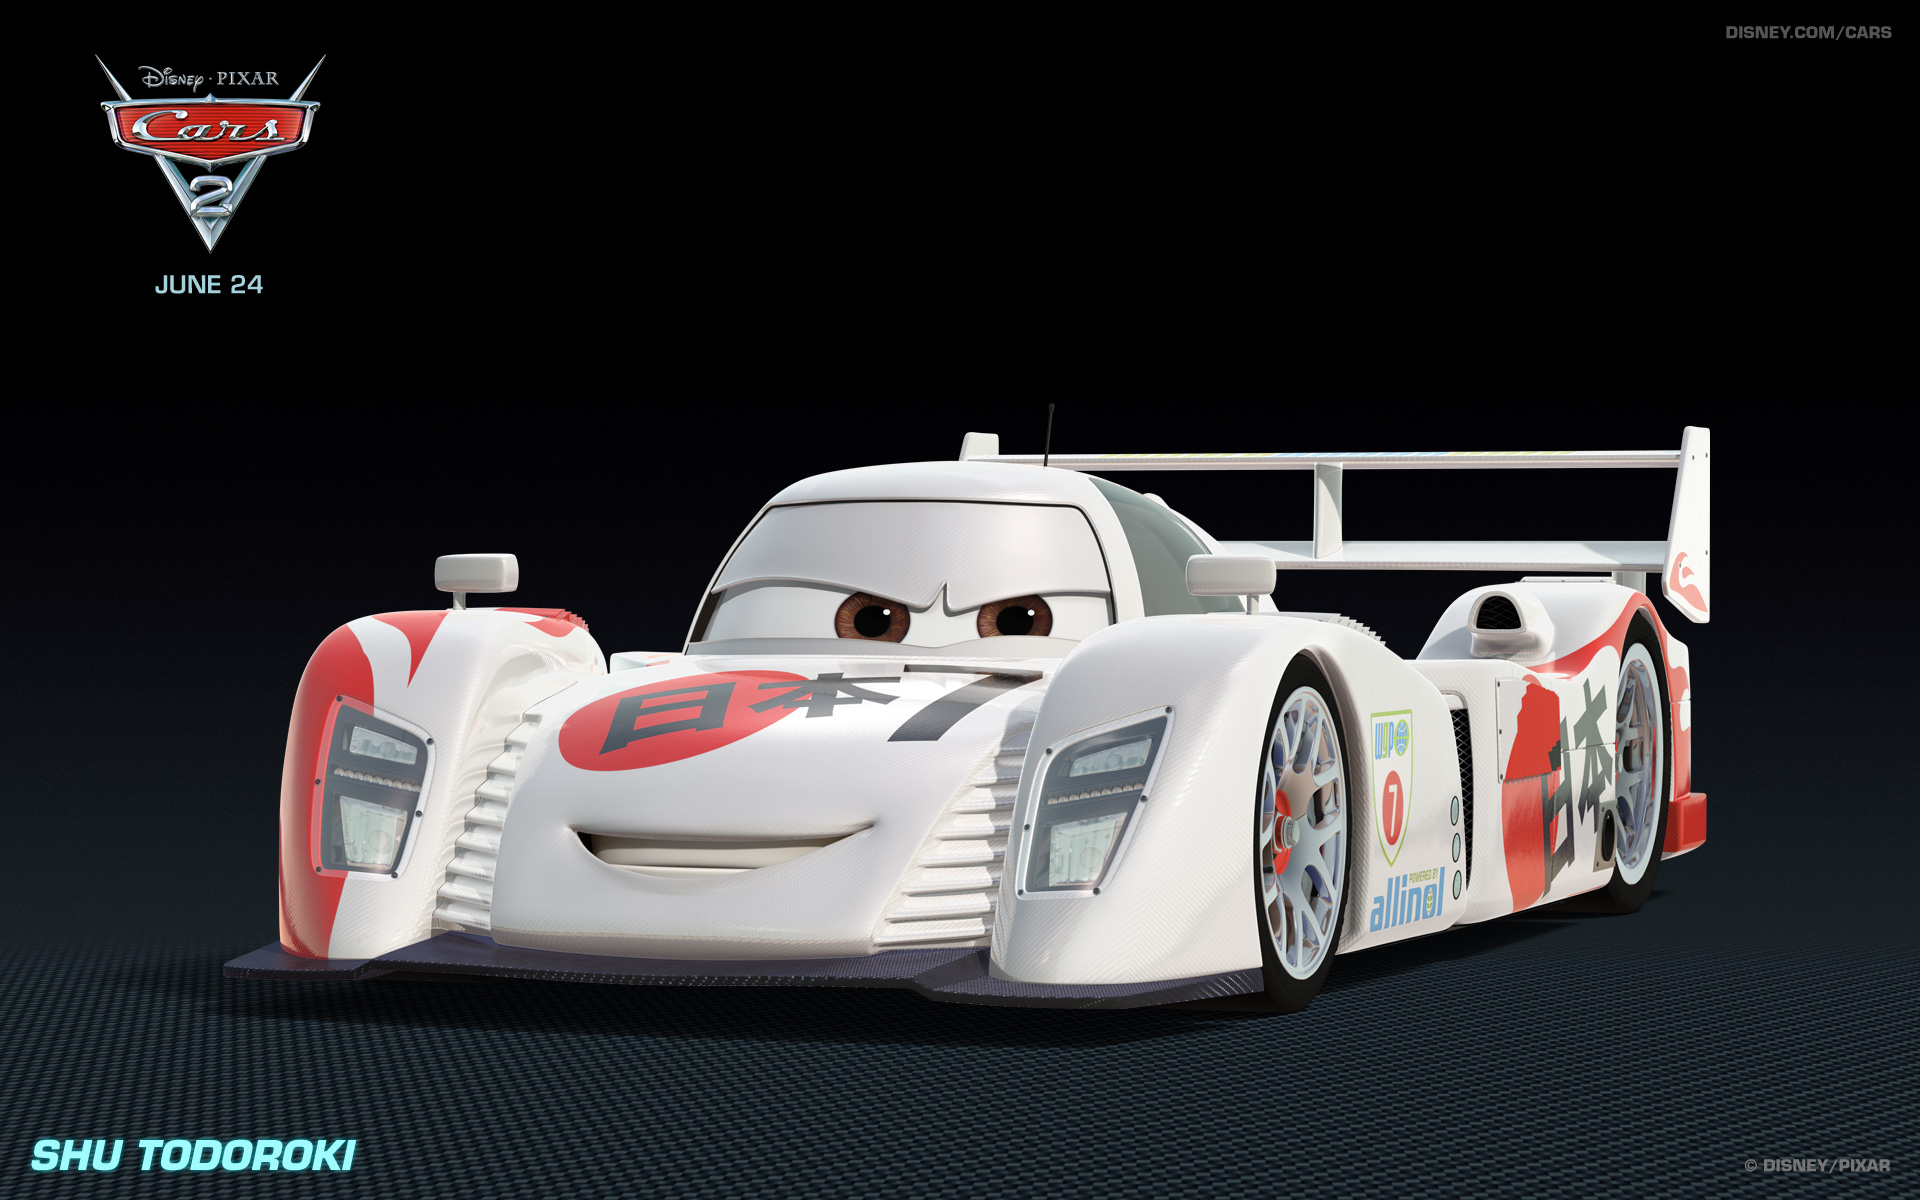 World Grand Prix Racecars Pixar Cars Wiki Fandom Powered By Wikia